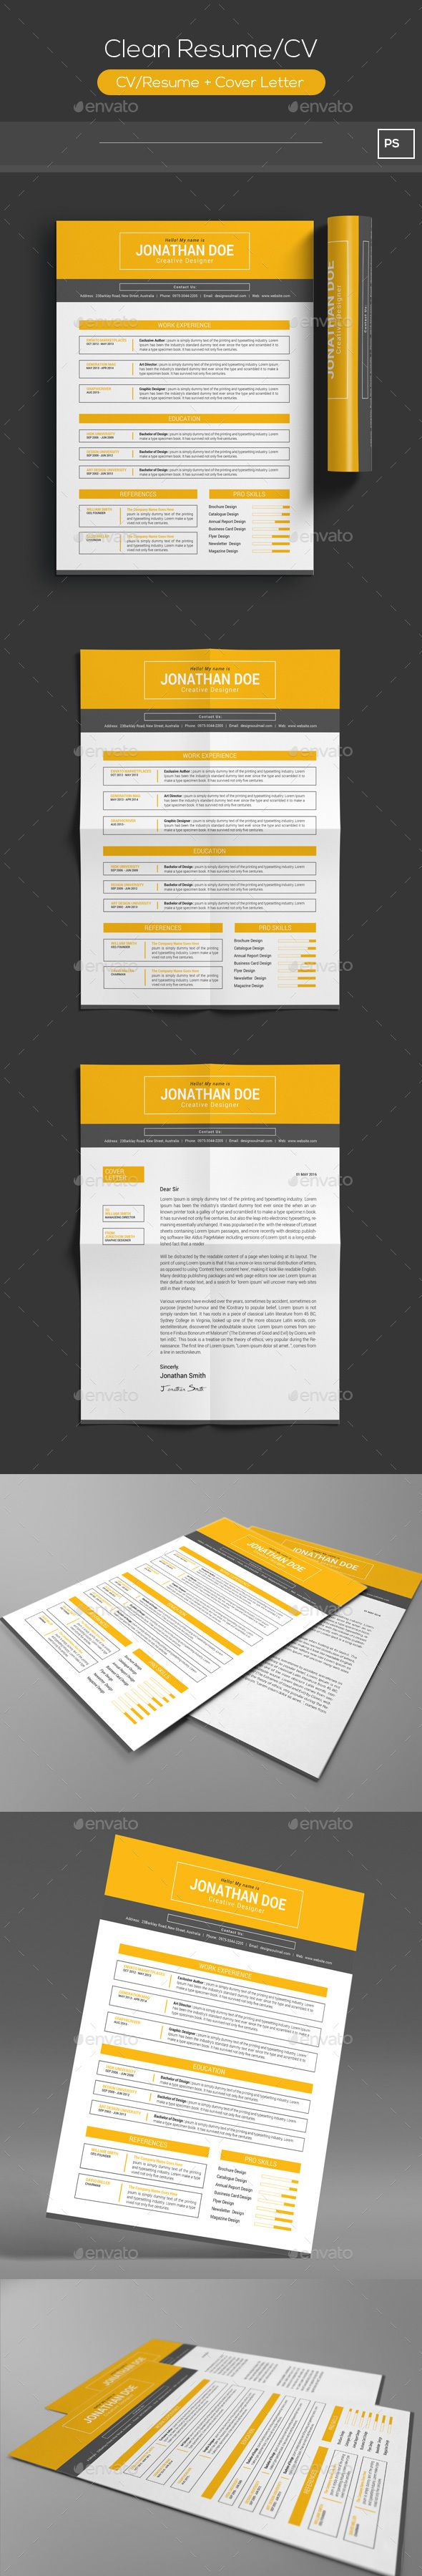 Clean Resume CV Template PSD Download